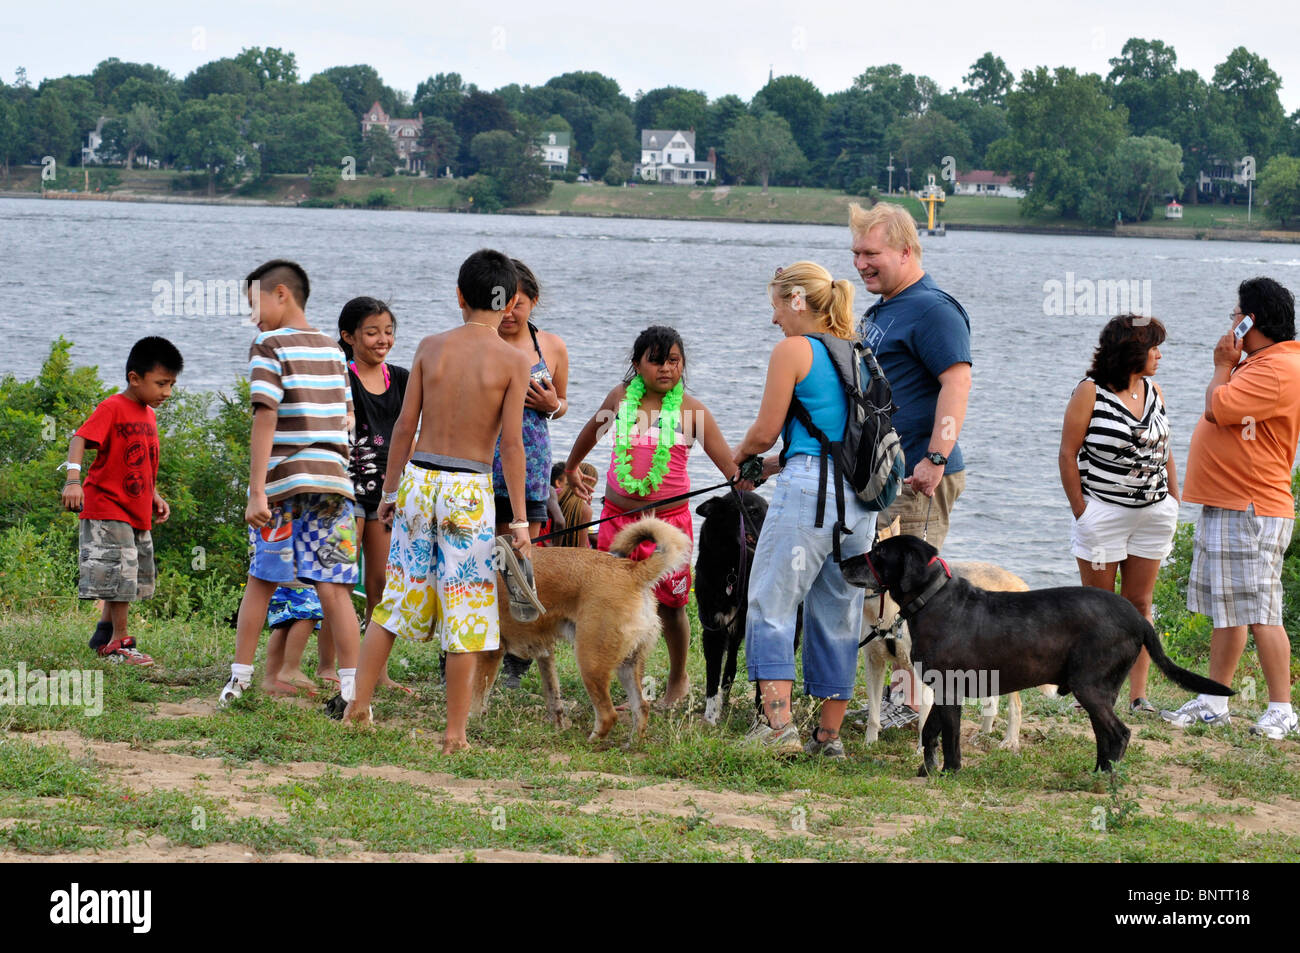 Man Playing With Dogs Stock Photos Man Playing With Dogs Stock Images Alamy